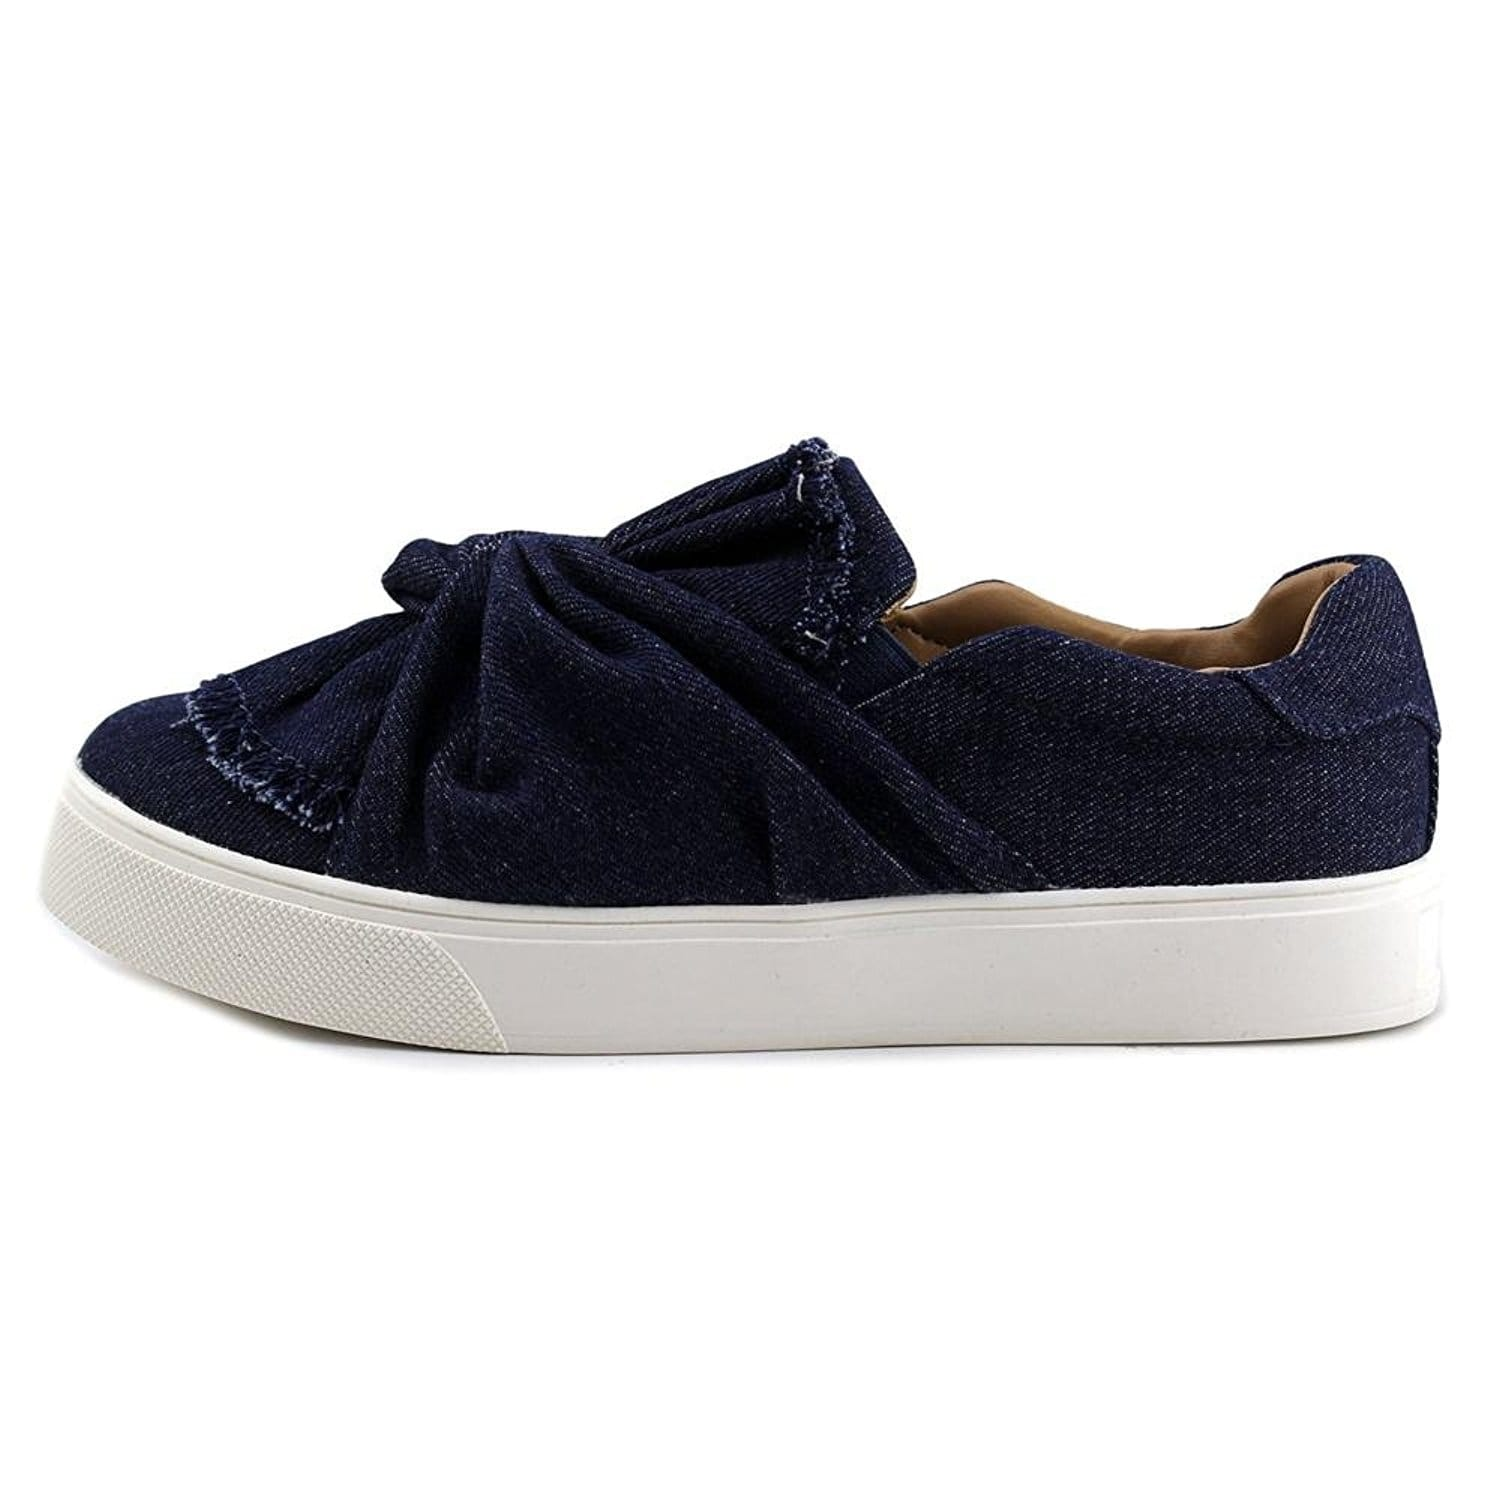 Womens Cadassa Low-Top Sneakers Aldo vIYPyyX